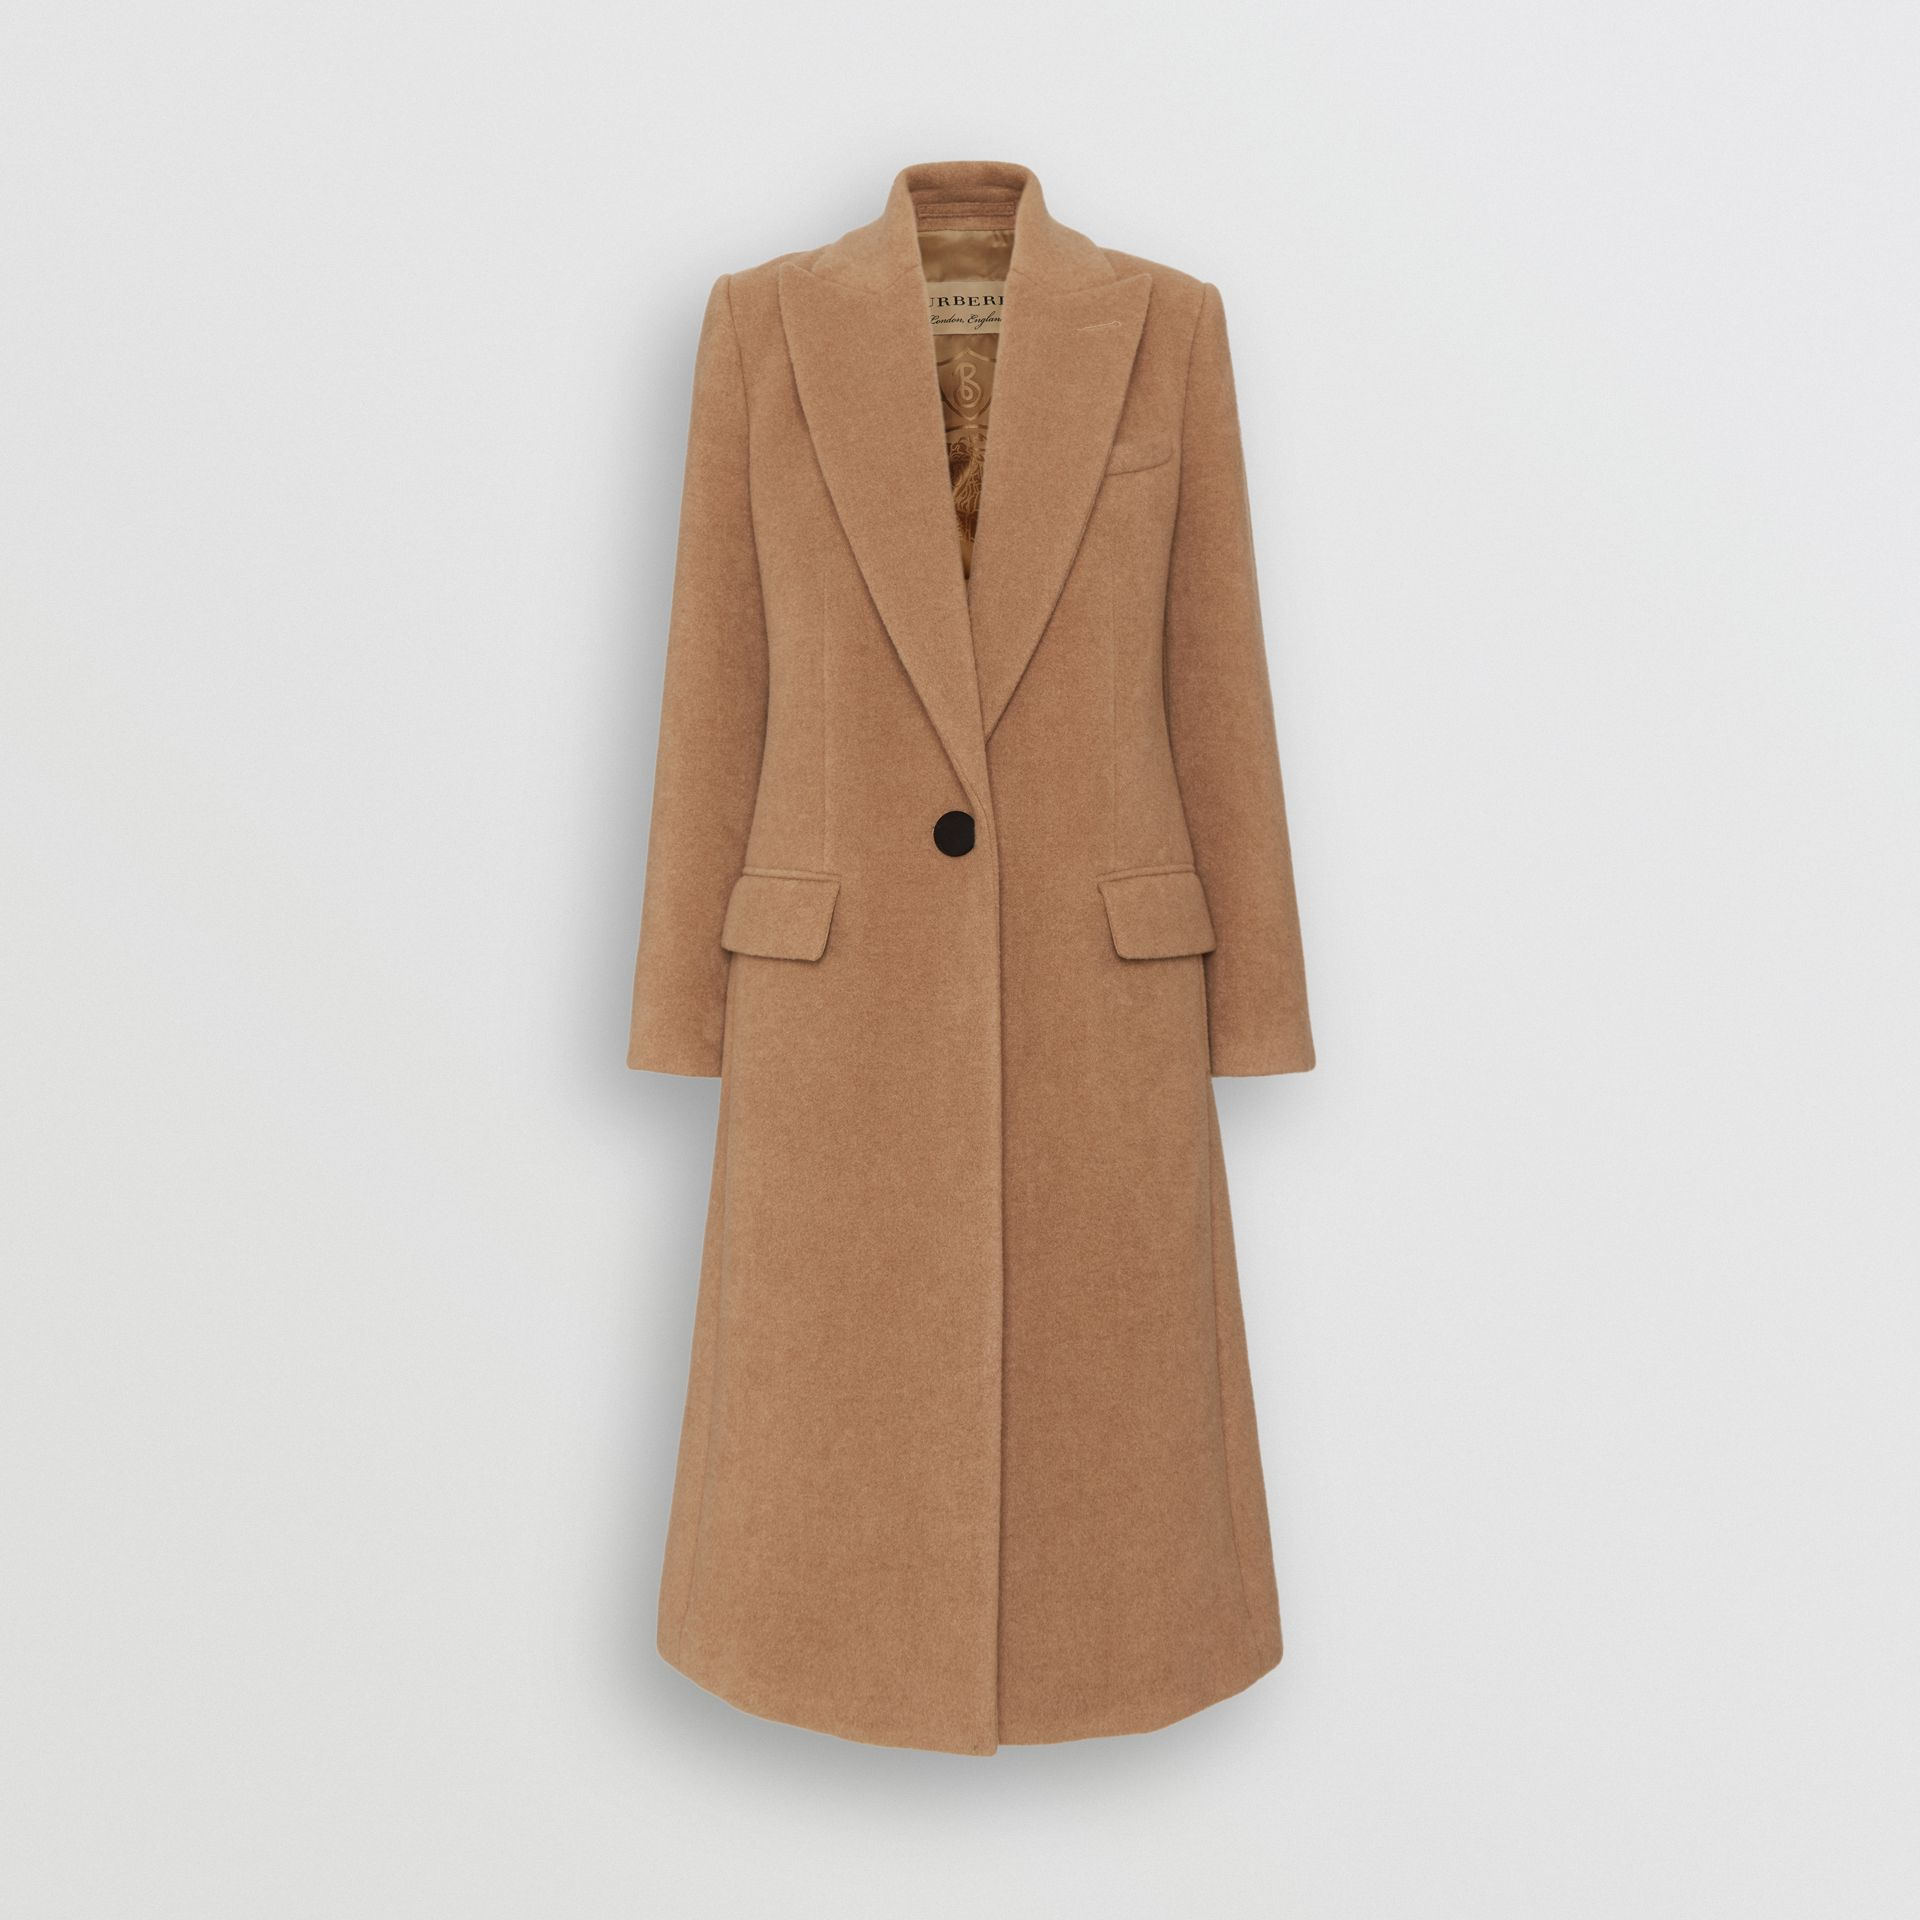 Oversized Lapel Camel Hair Tailored Coat - Women | Burberry United Kingdom - gallery image 3